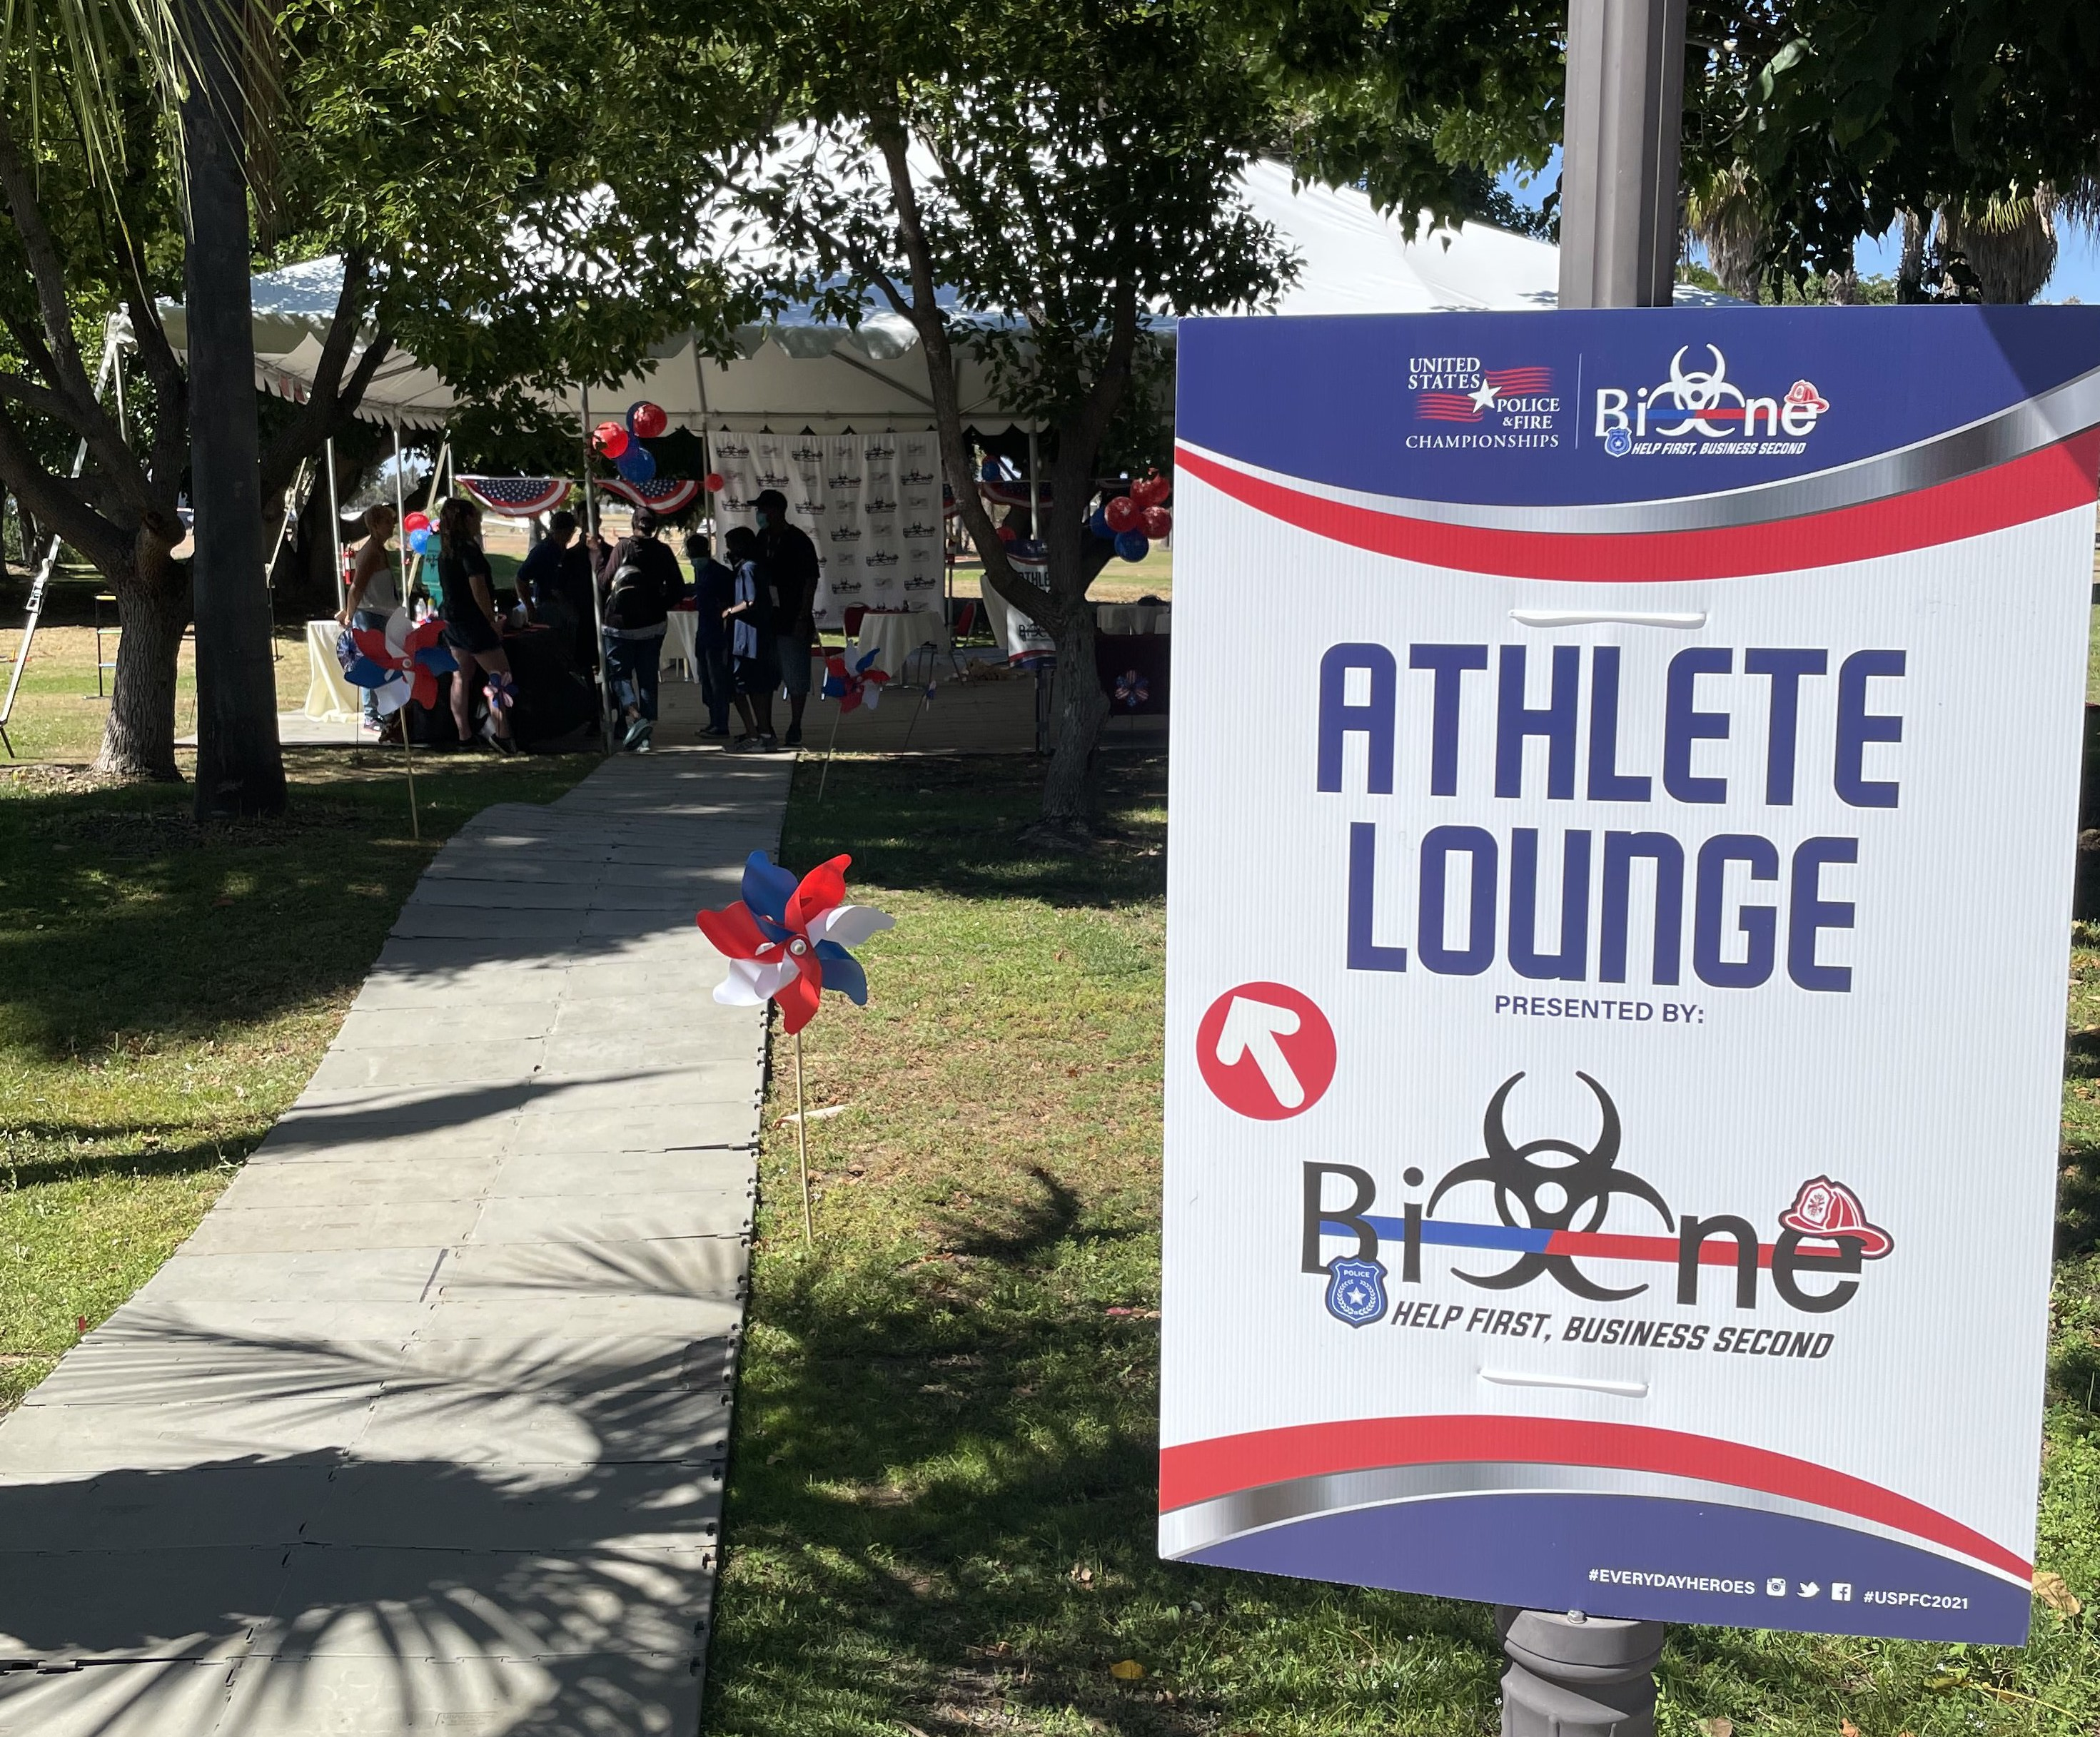 Bio-One Booth and Athlete Lounge at the United States Police and Fire Championships